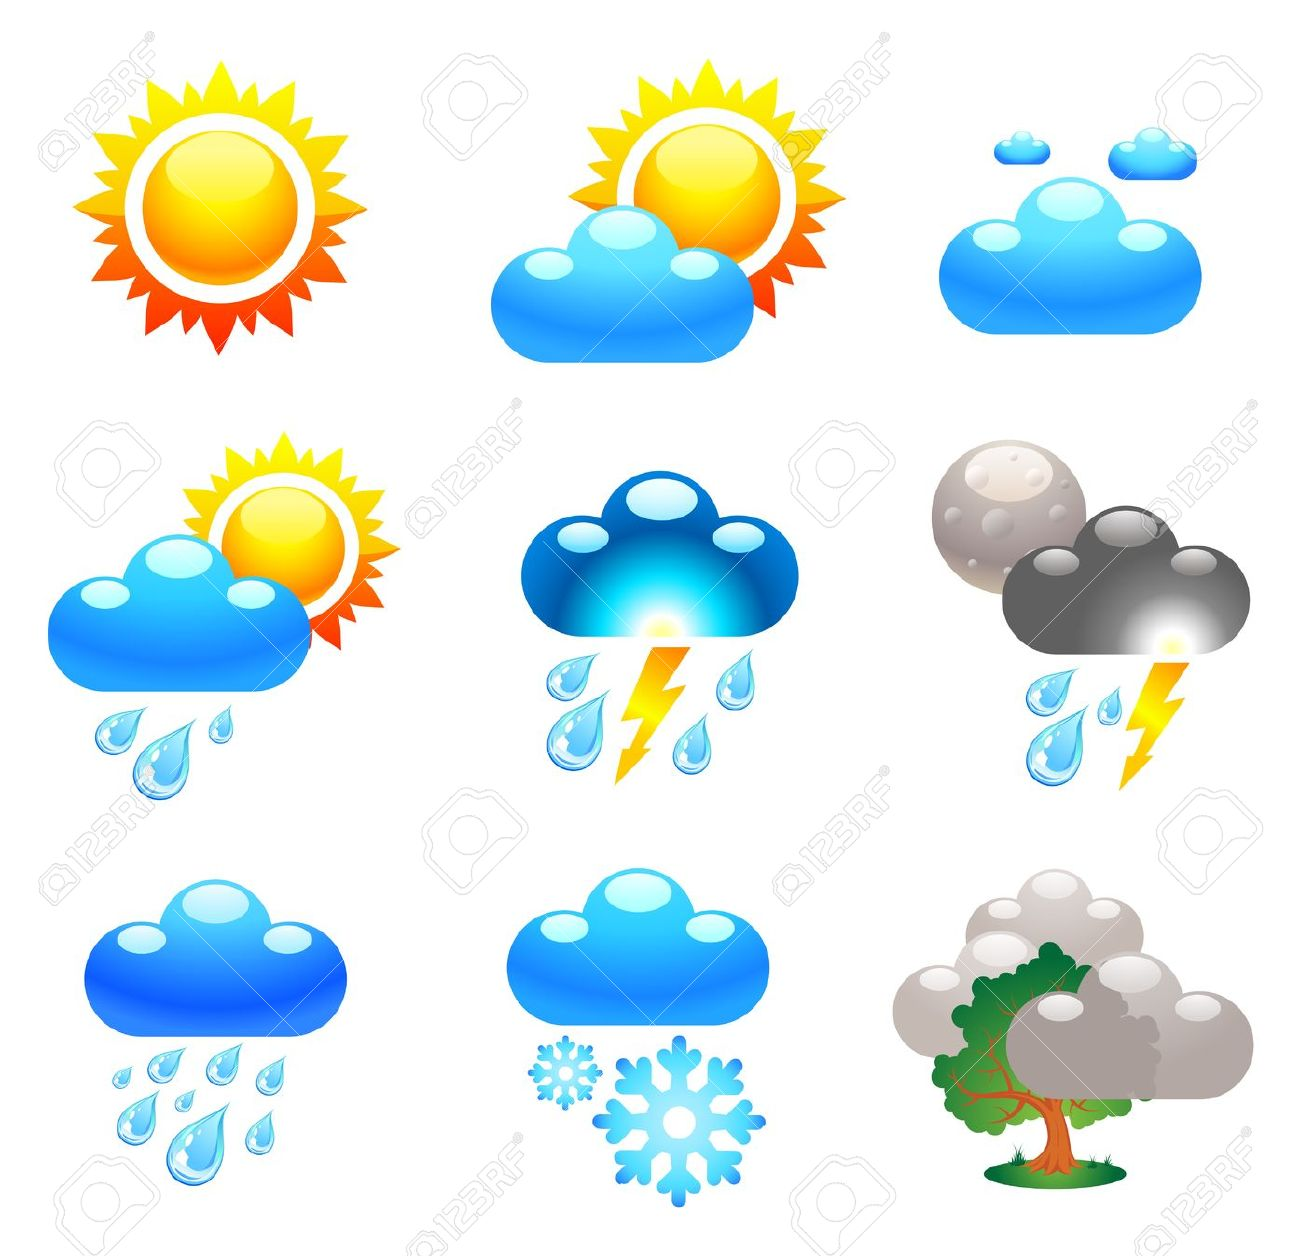 Sunny Weather Clipart At Getdrawings Free For Personal Use